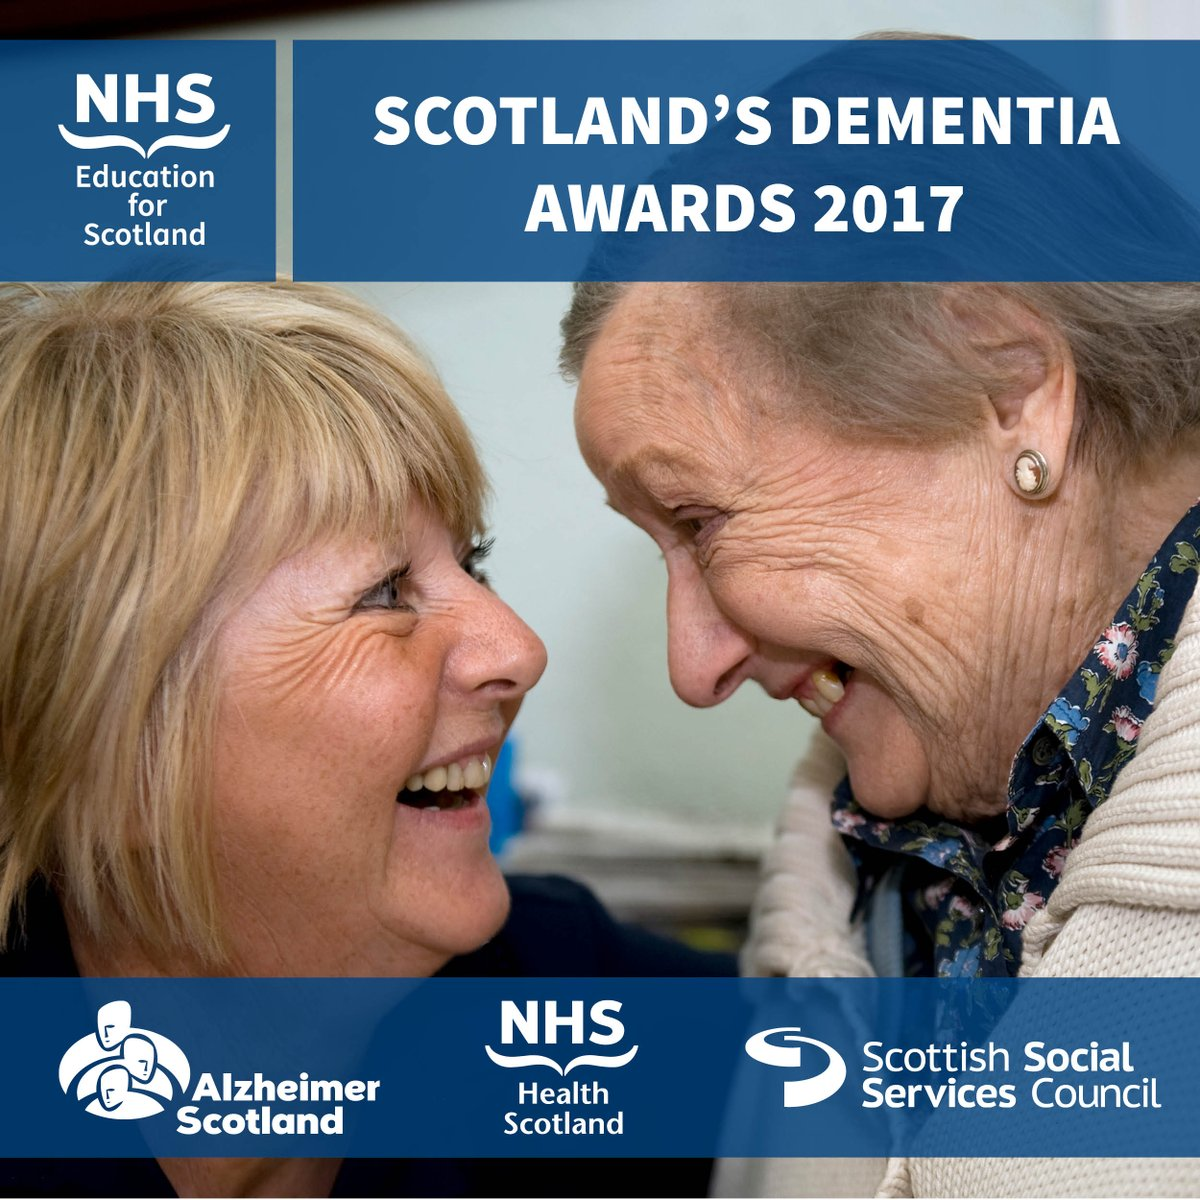 Scotland's Dementia Awards 2017 are a great way to mark World Alzheime...